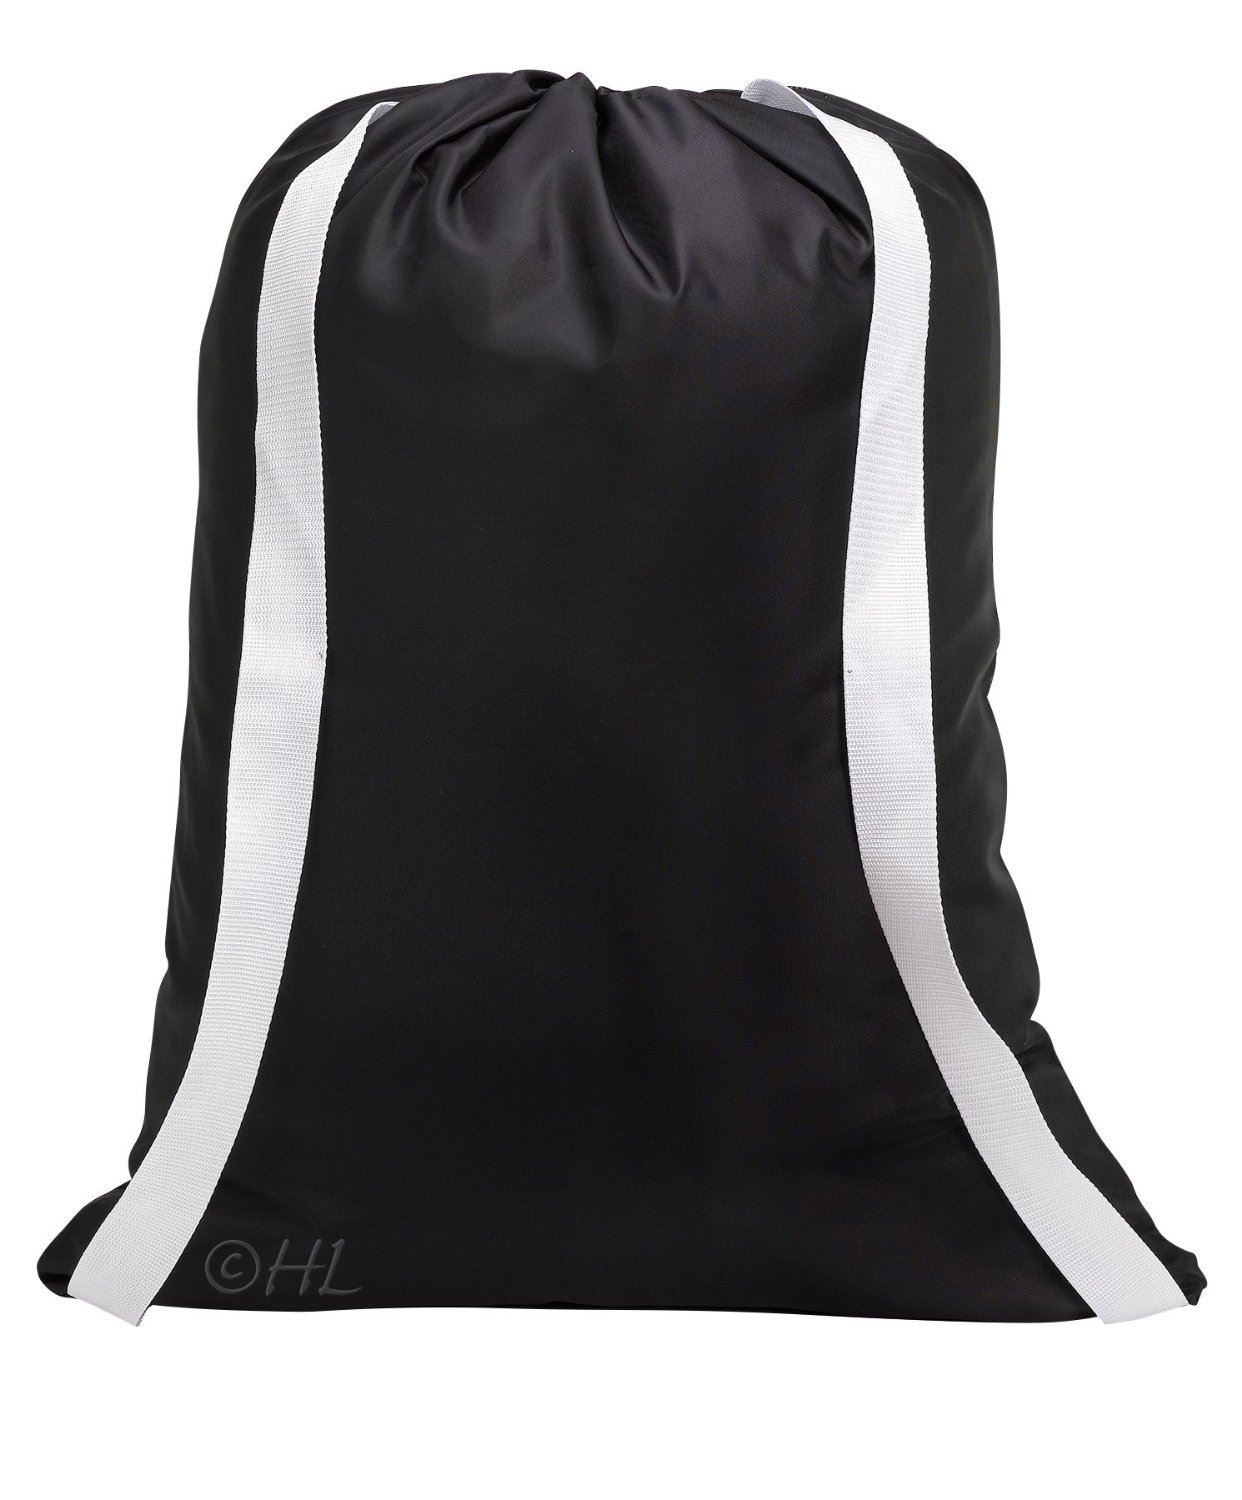 Backpack laundry bag commercial grade 22 x28 ebay - X laundry bags ...